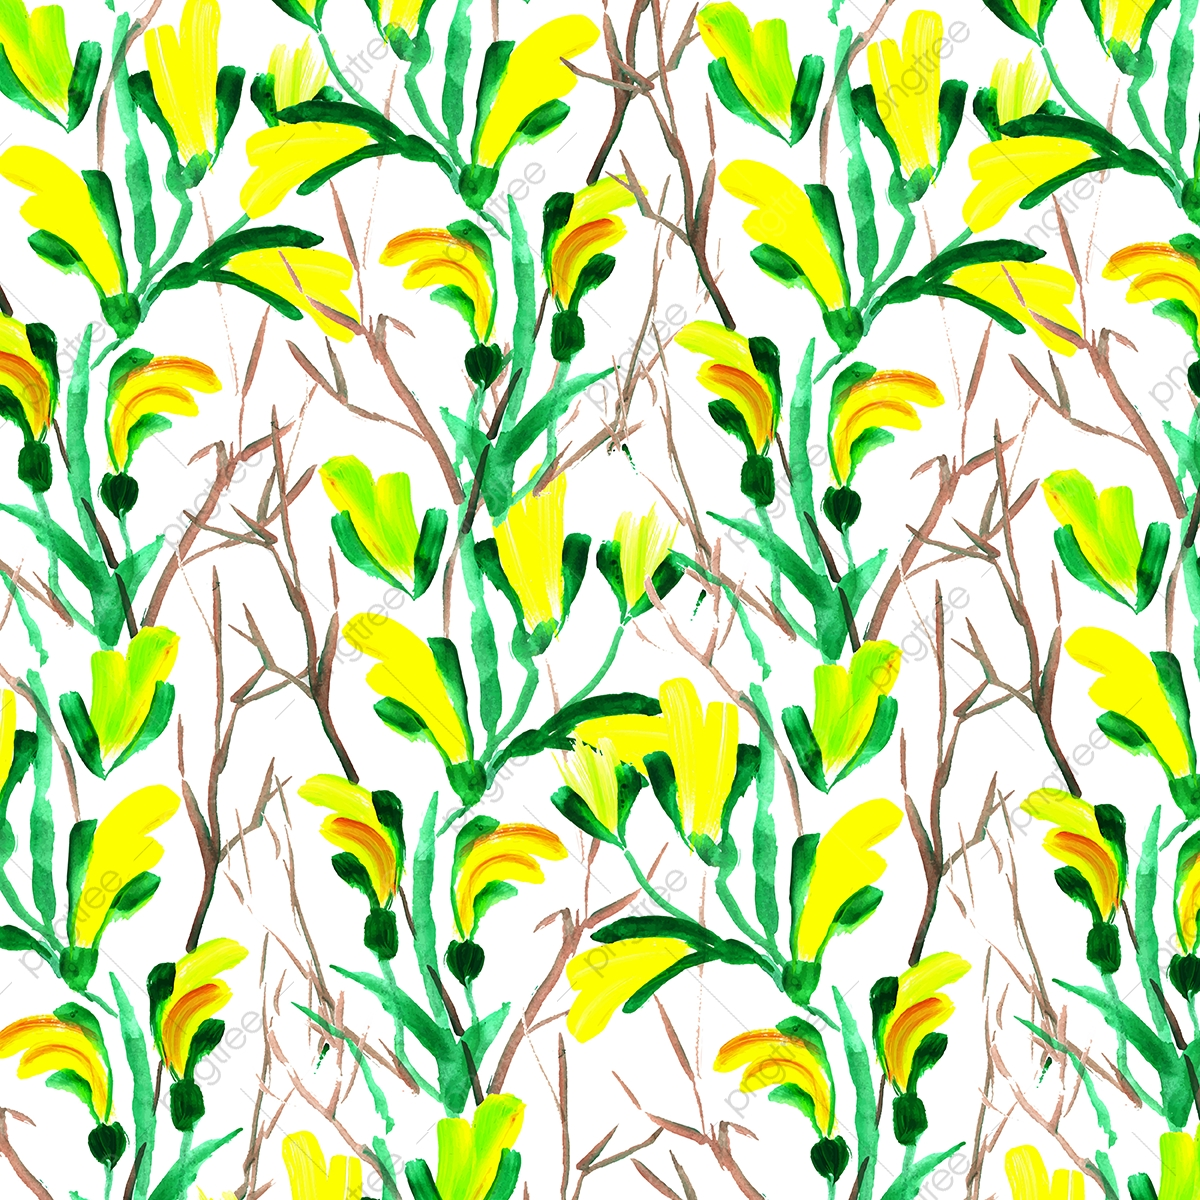 Watercolor Floral Background Wallpaper Plant Stem Grass Png And